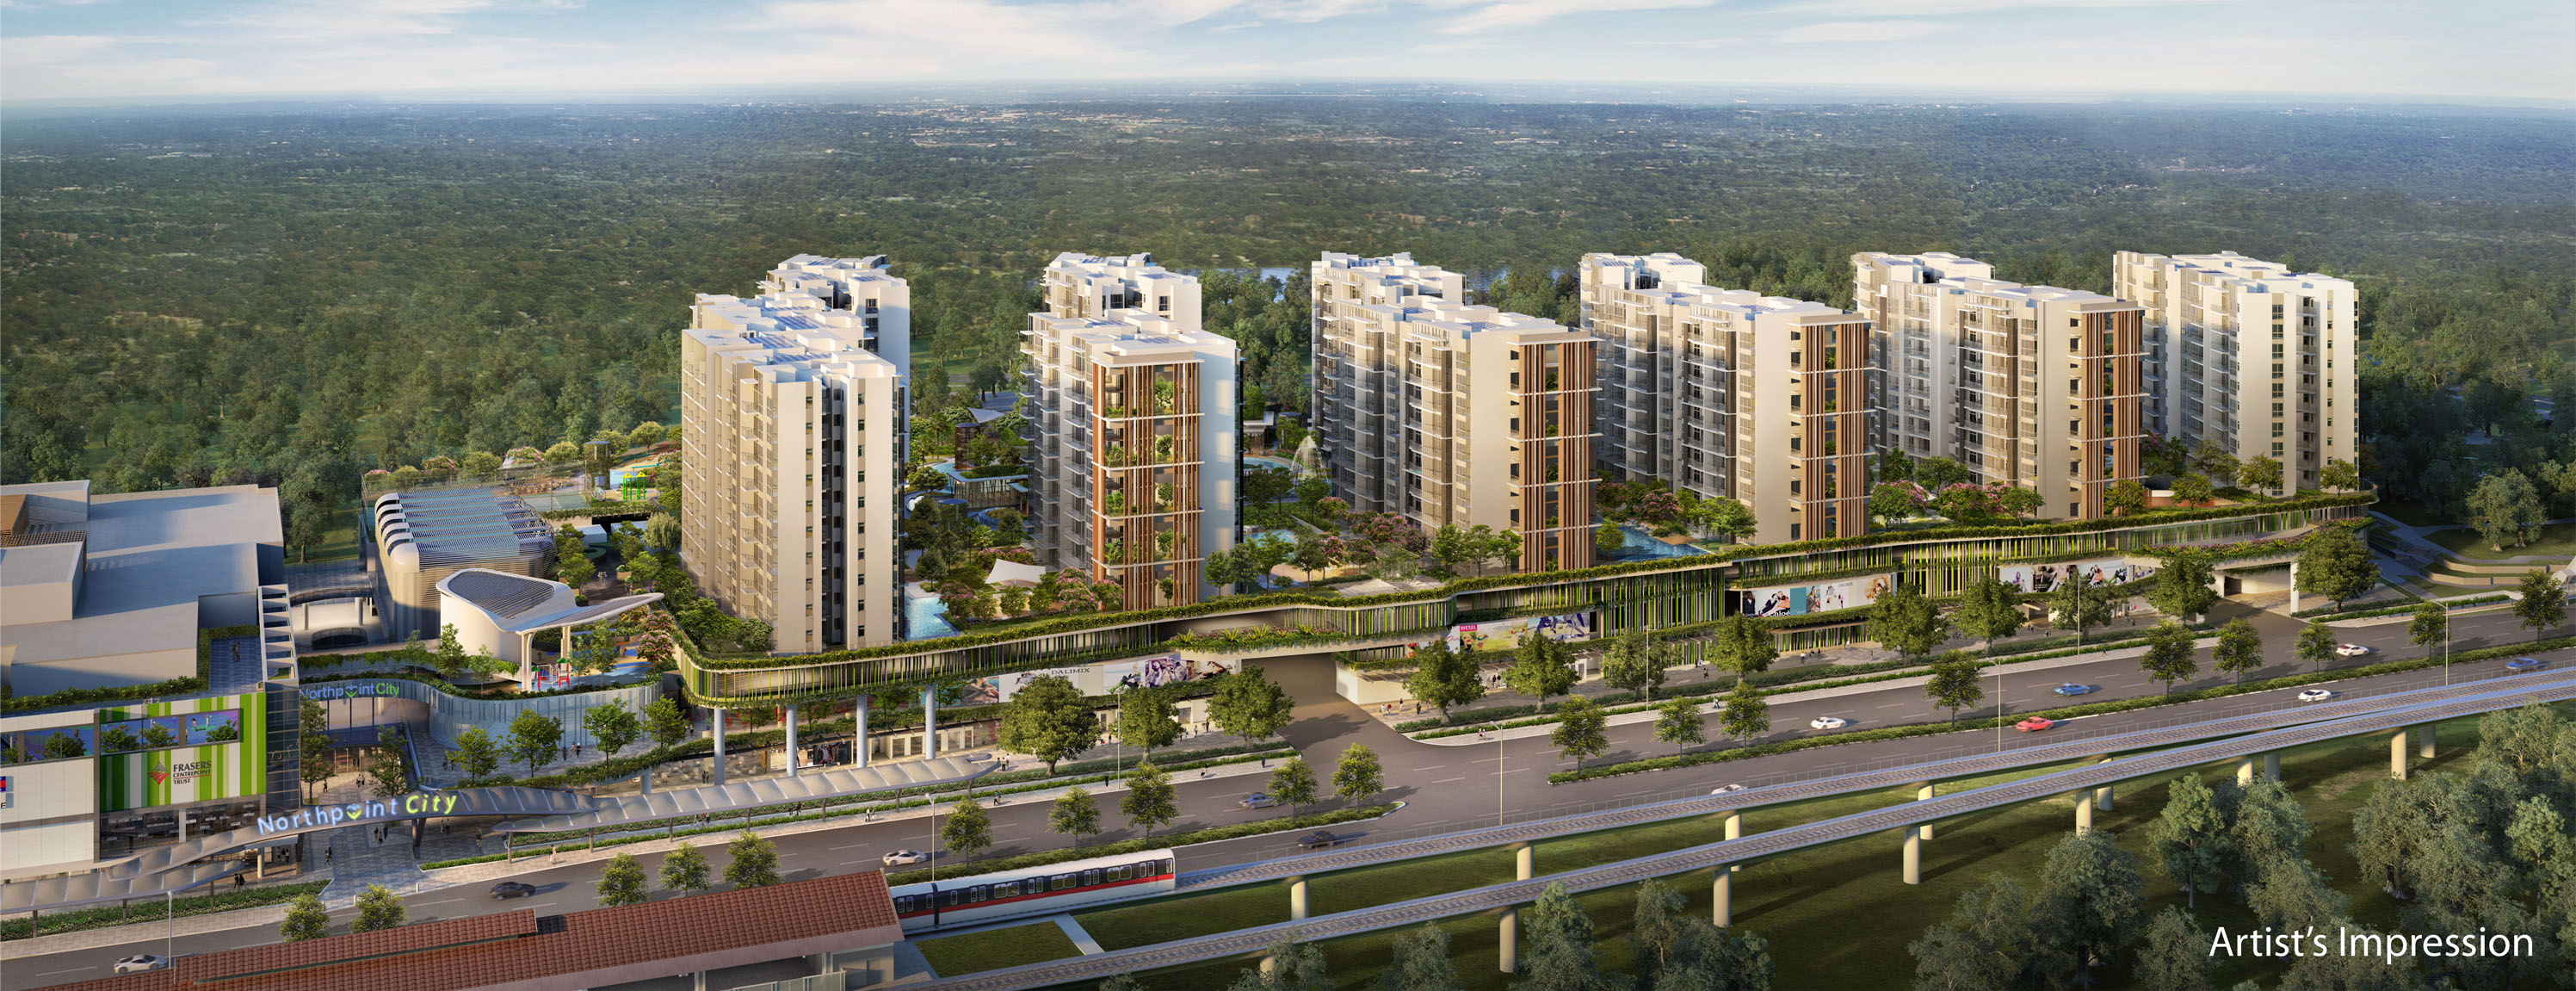 Northpark-Residences-aerial-view